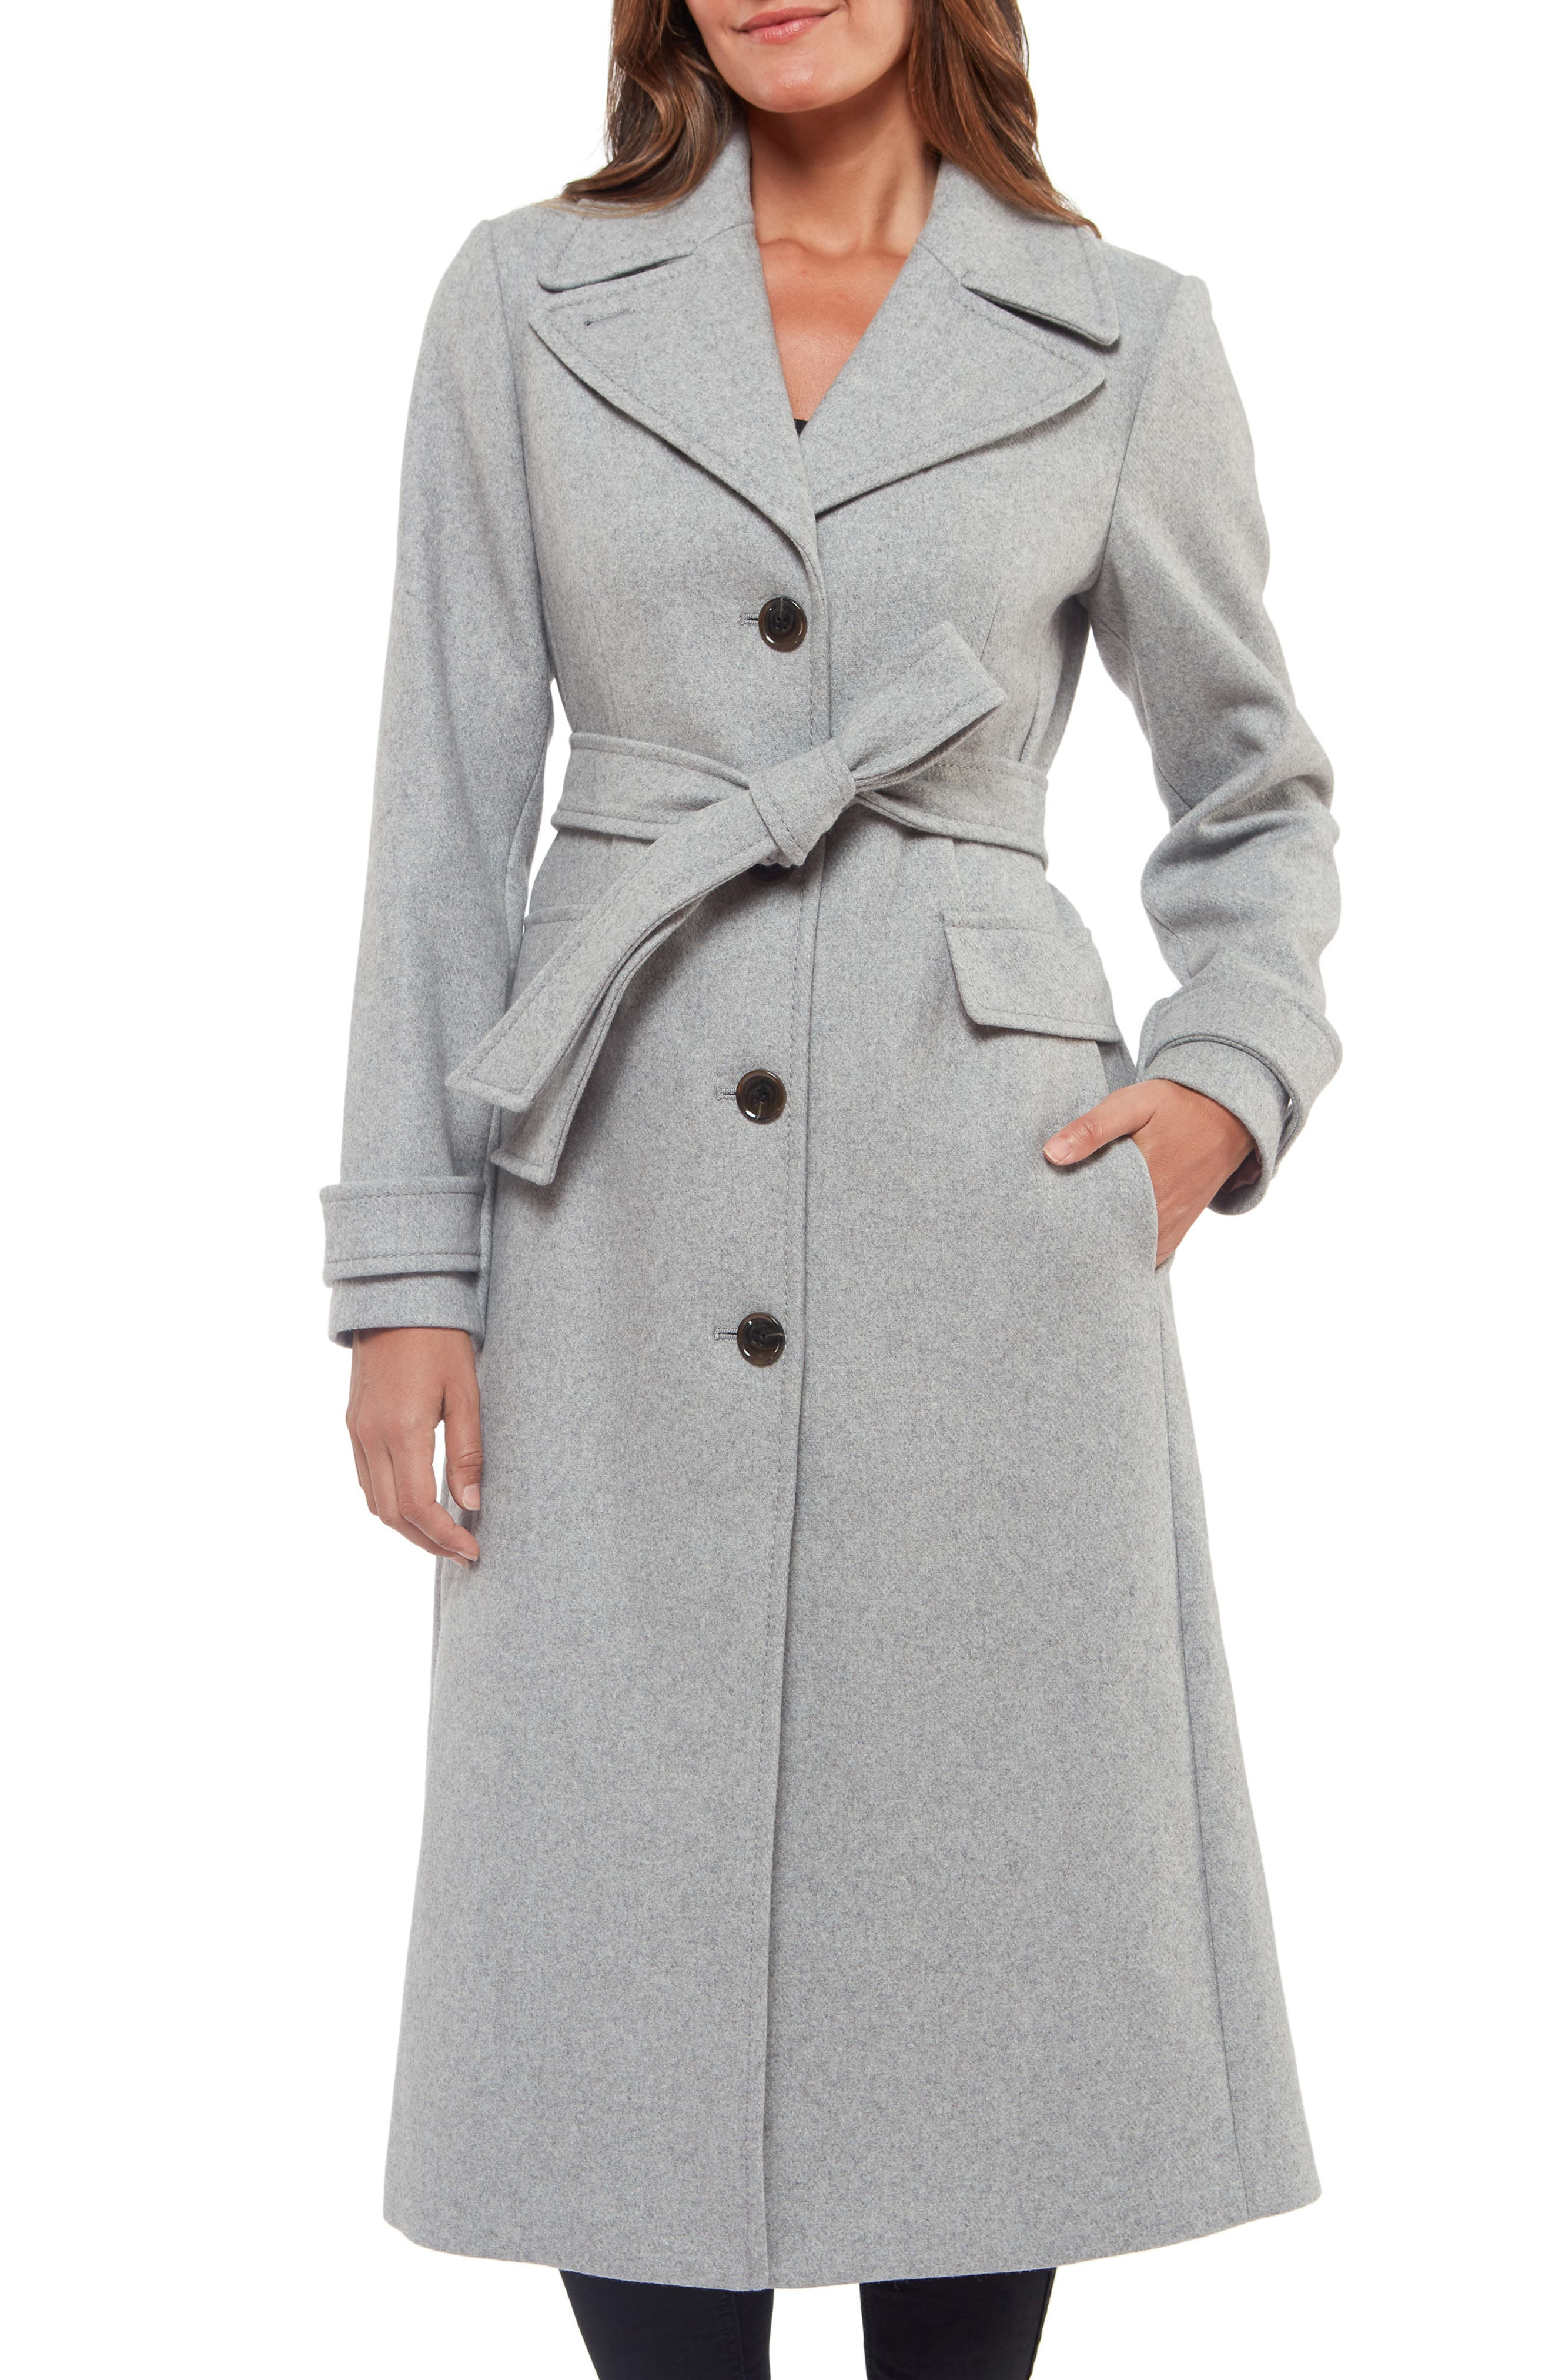 1930s Style Clothing and Fashion Womens Kate Spade New York Belted Wool Blend Coat Size X-Small - Grey $438.00 AT vintagedancer.com